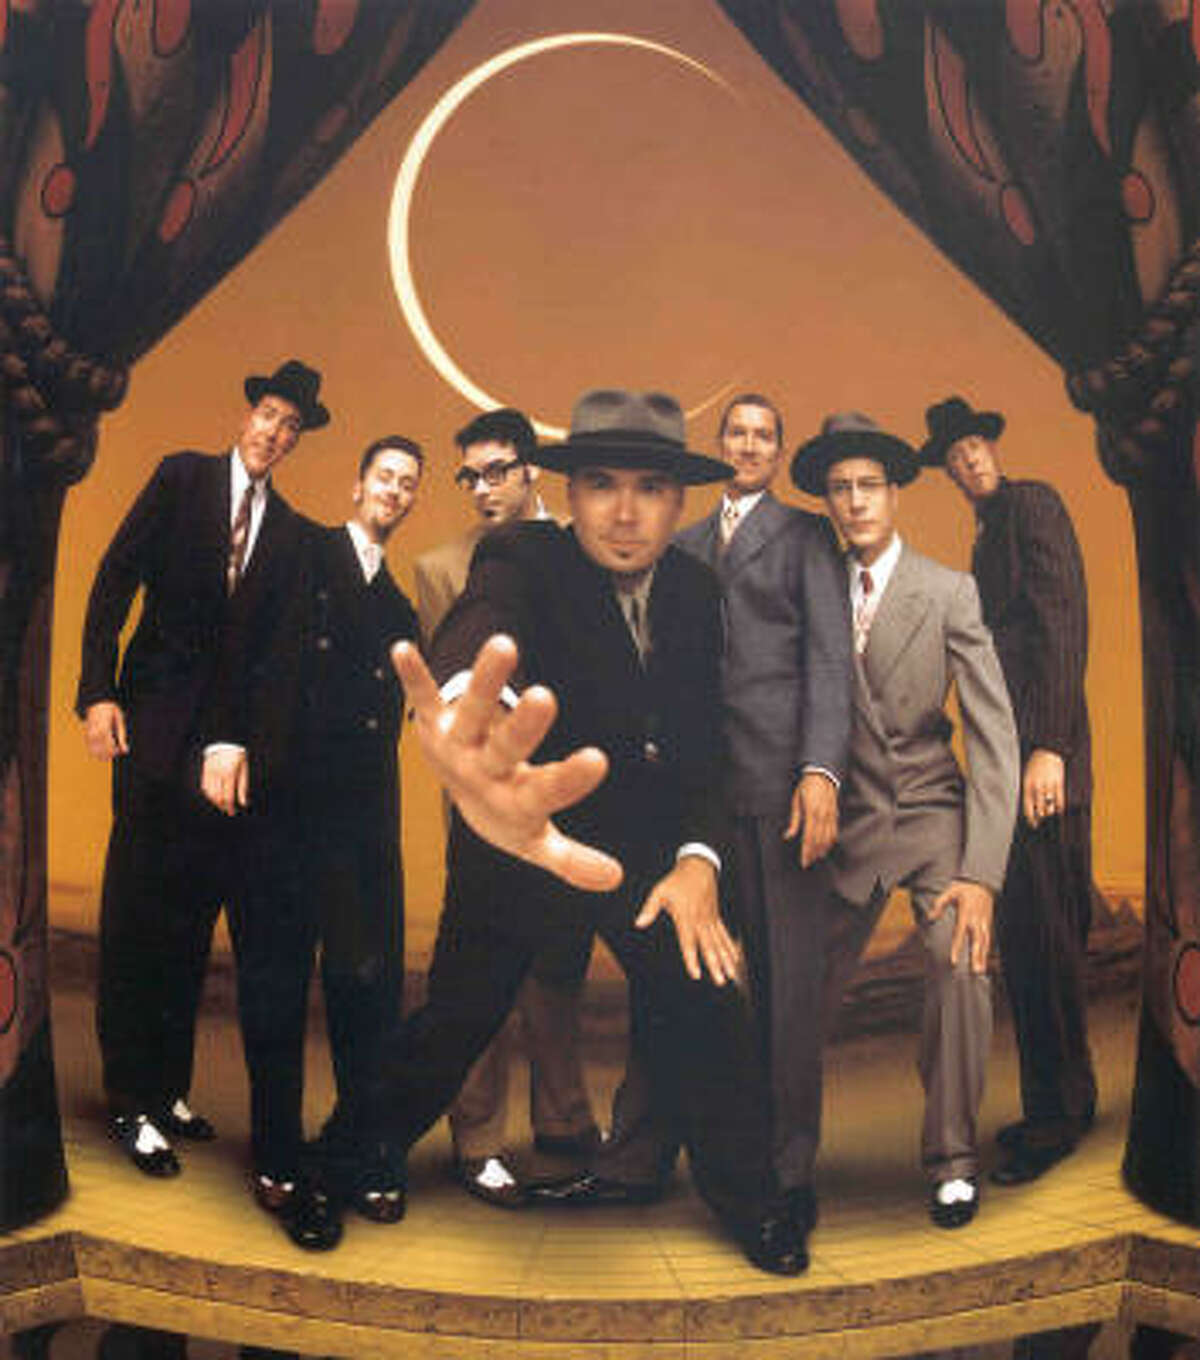 Pretend it's the 1940s (or the late 1990s) and get back into the swing with Big Bad Voodoo Daddy, one of the best of the swing revival bands. It plays the Houston Zoo's Feast With the Beasts event. 7 p.m. Friday at the Houston Zoo, 6200 Golf Course Drive in Hermann Park. Tickets are $85; www.houstonzoo.org.